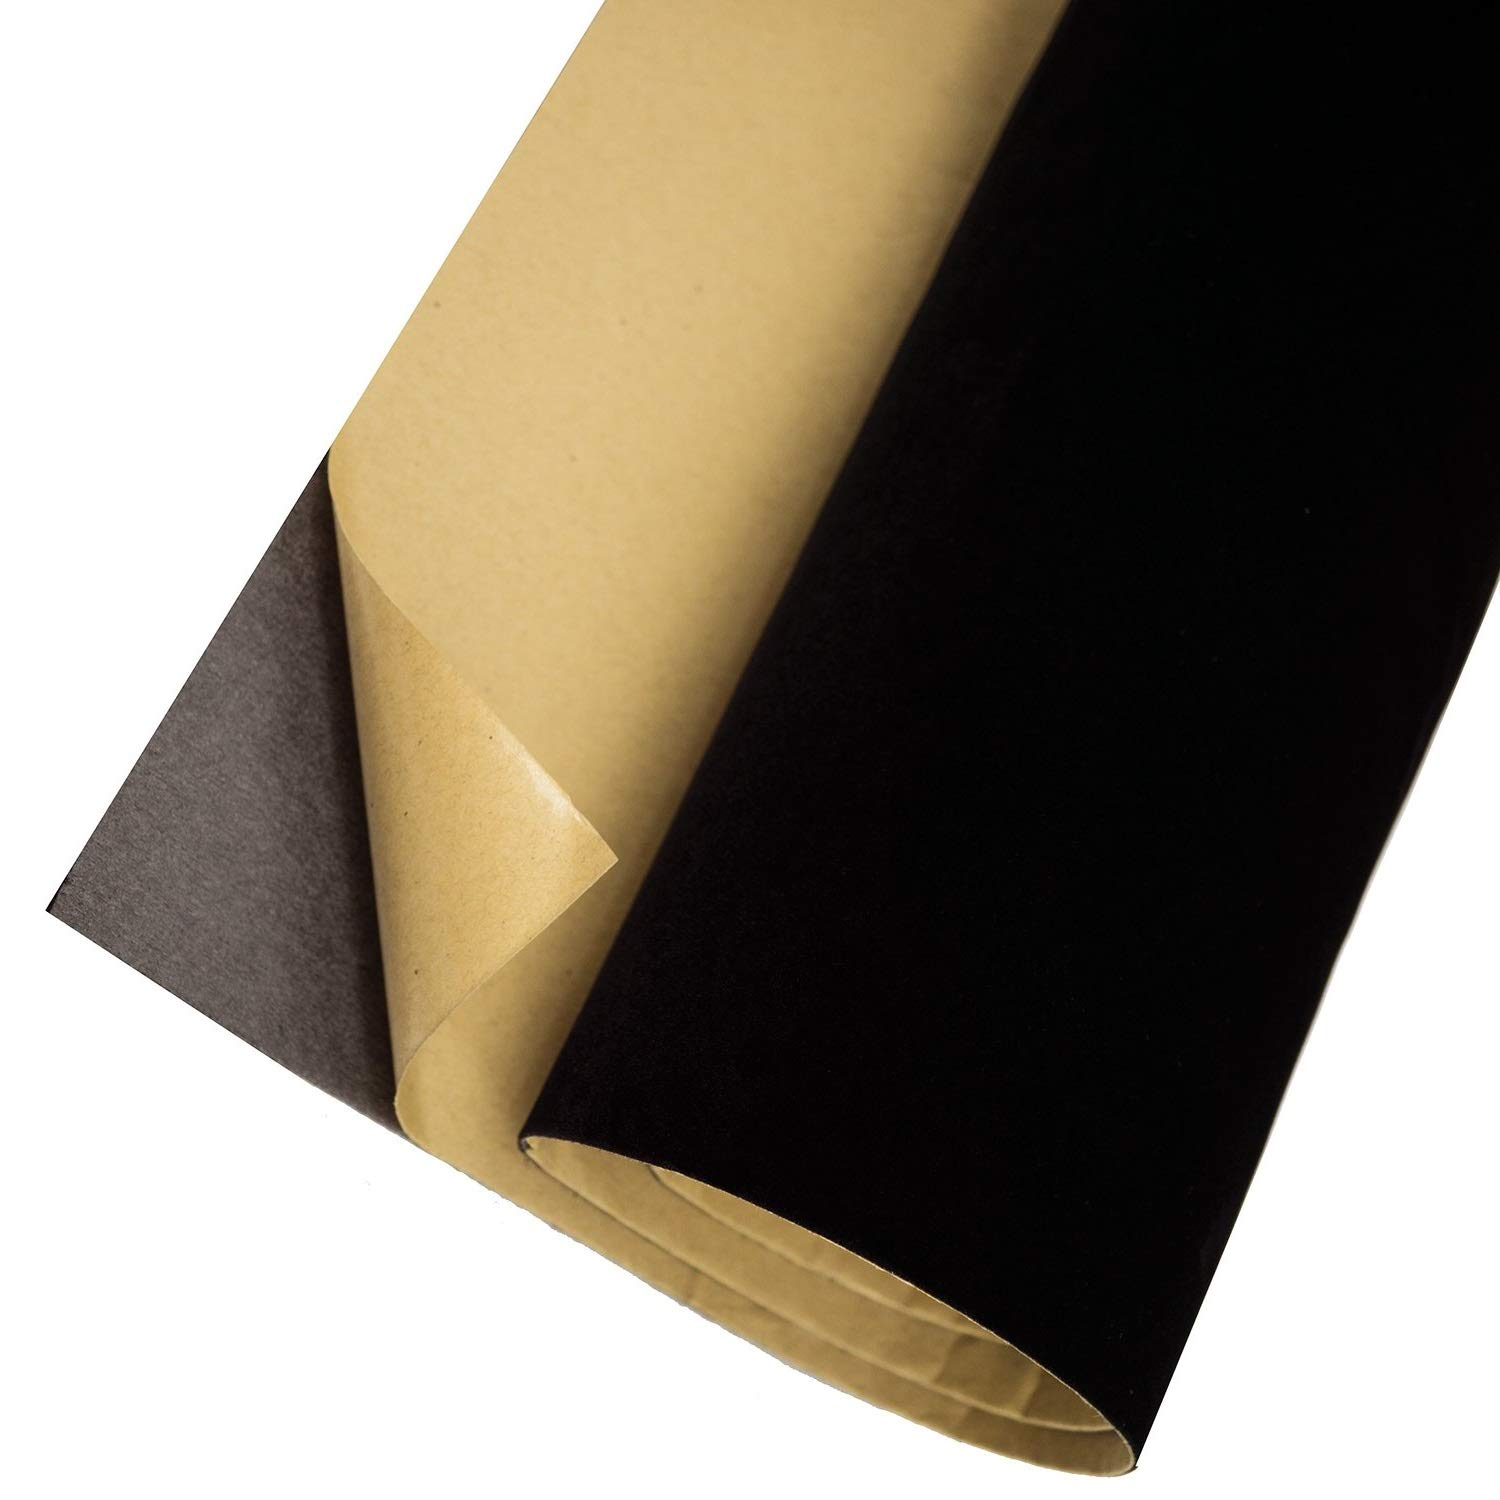 Self Adhesive Velvet Flock Contact Paper Roll Shelf Liner for Jewelry Drawer Craft Fabric 17.7'' x 78.7'', Soft Velvet Liner for Drawer DIY (Black) by XWZN (Image #1)